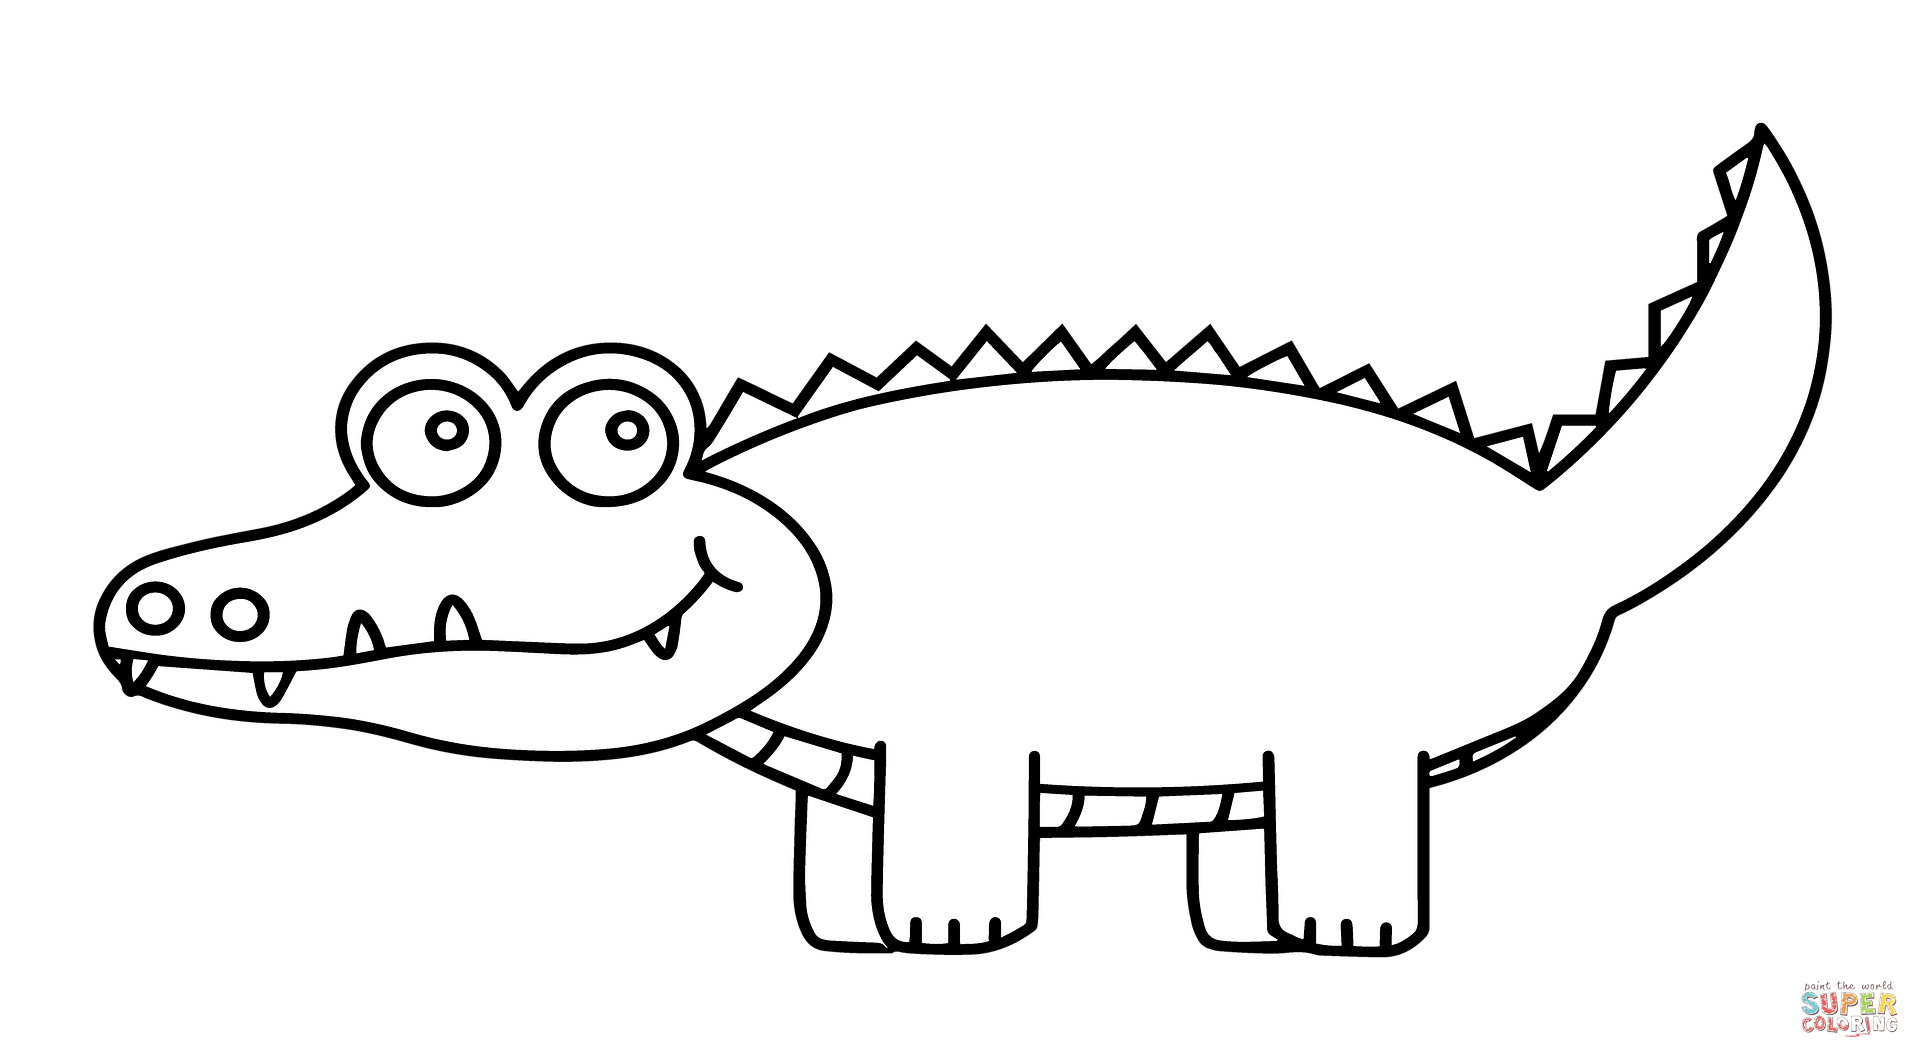 free printable pictures of alligators free printable pictures of alligators free printable alligators pictures of